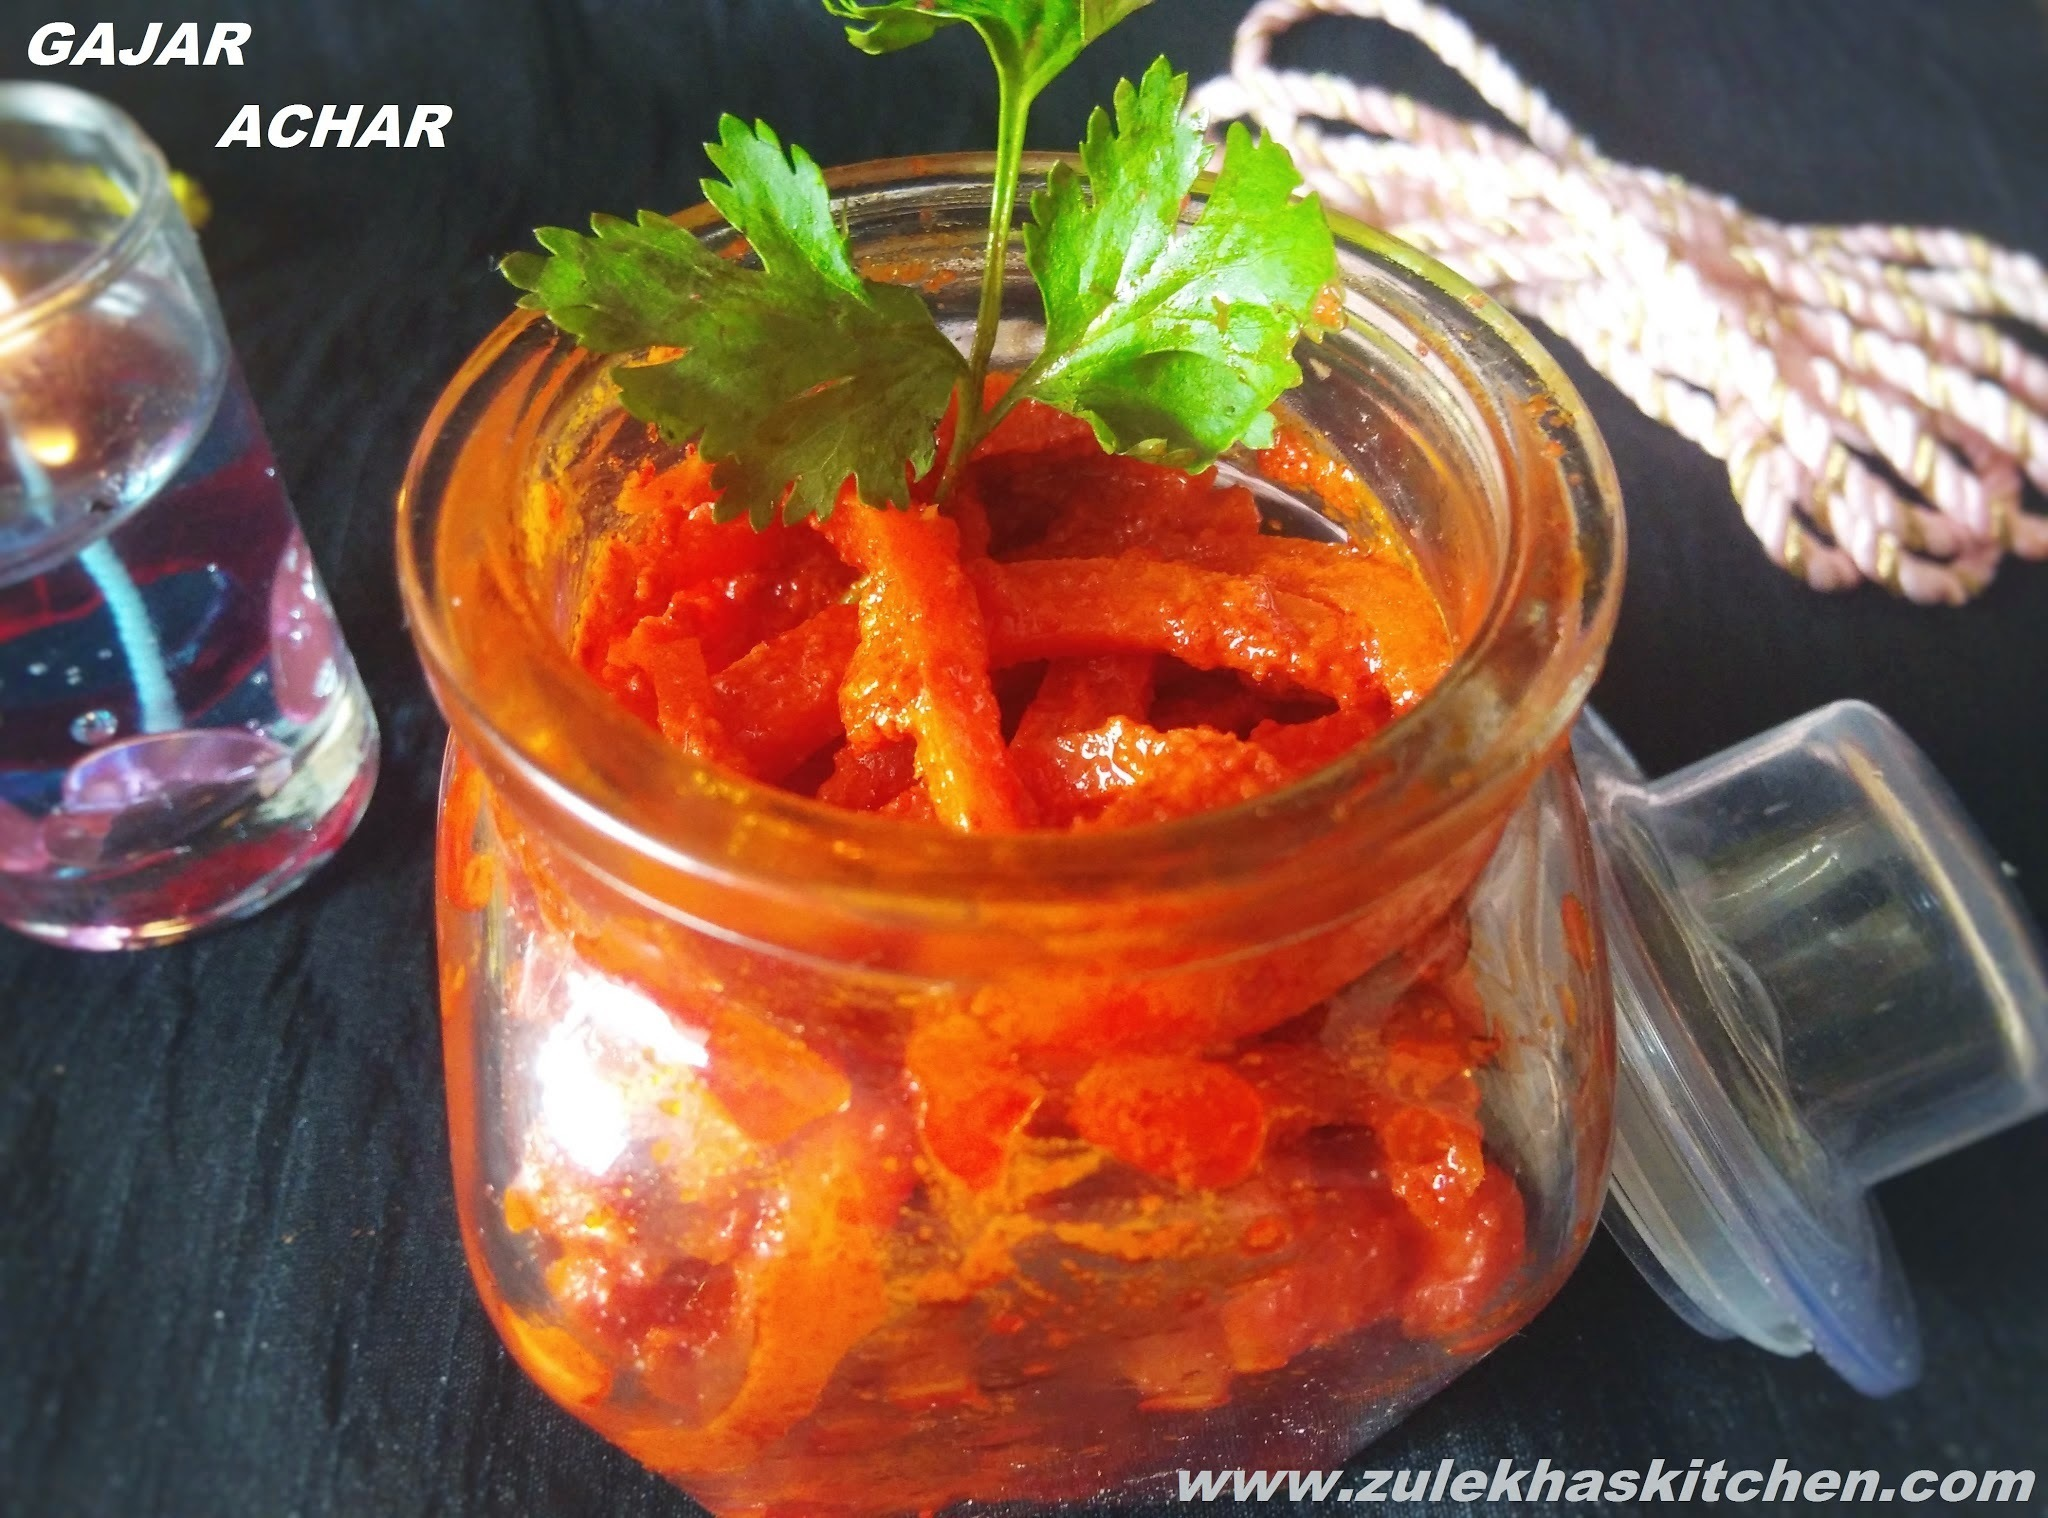 Recipe of Gajar Achar / Instant Carrot Pickle